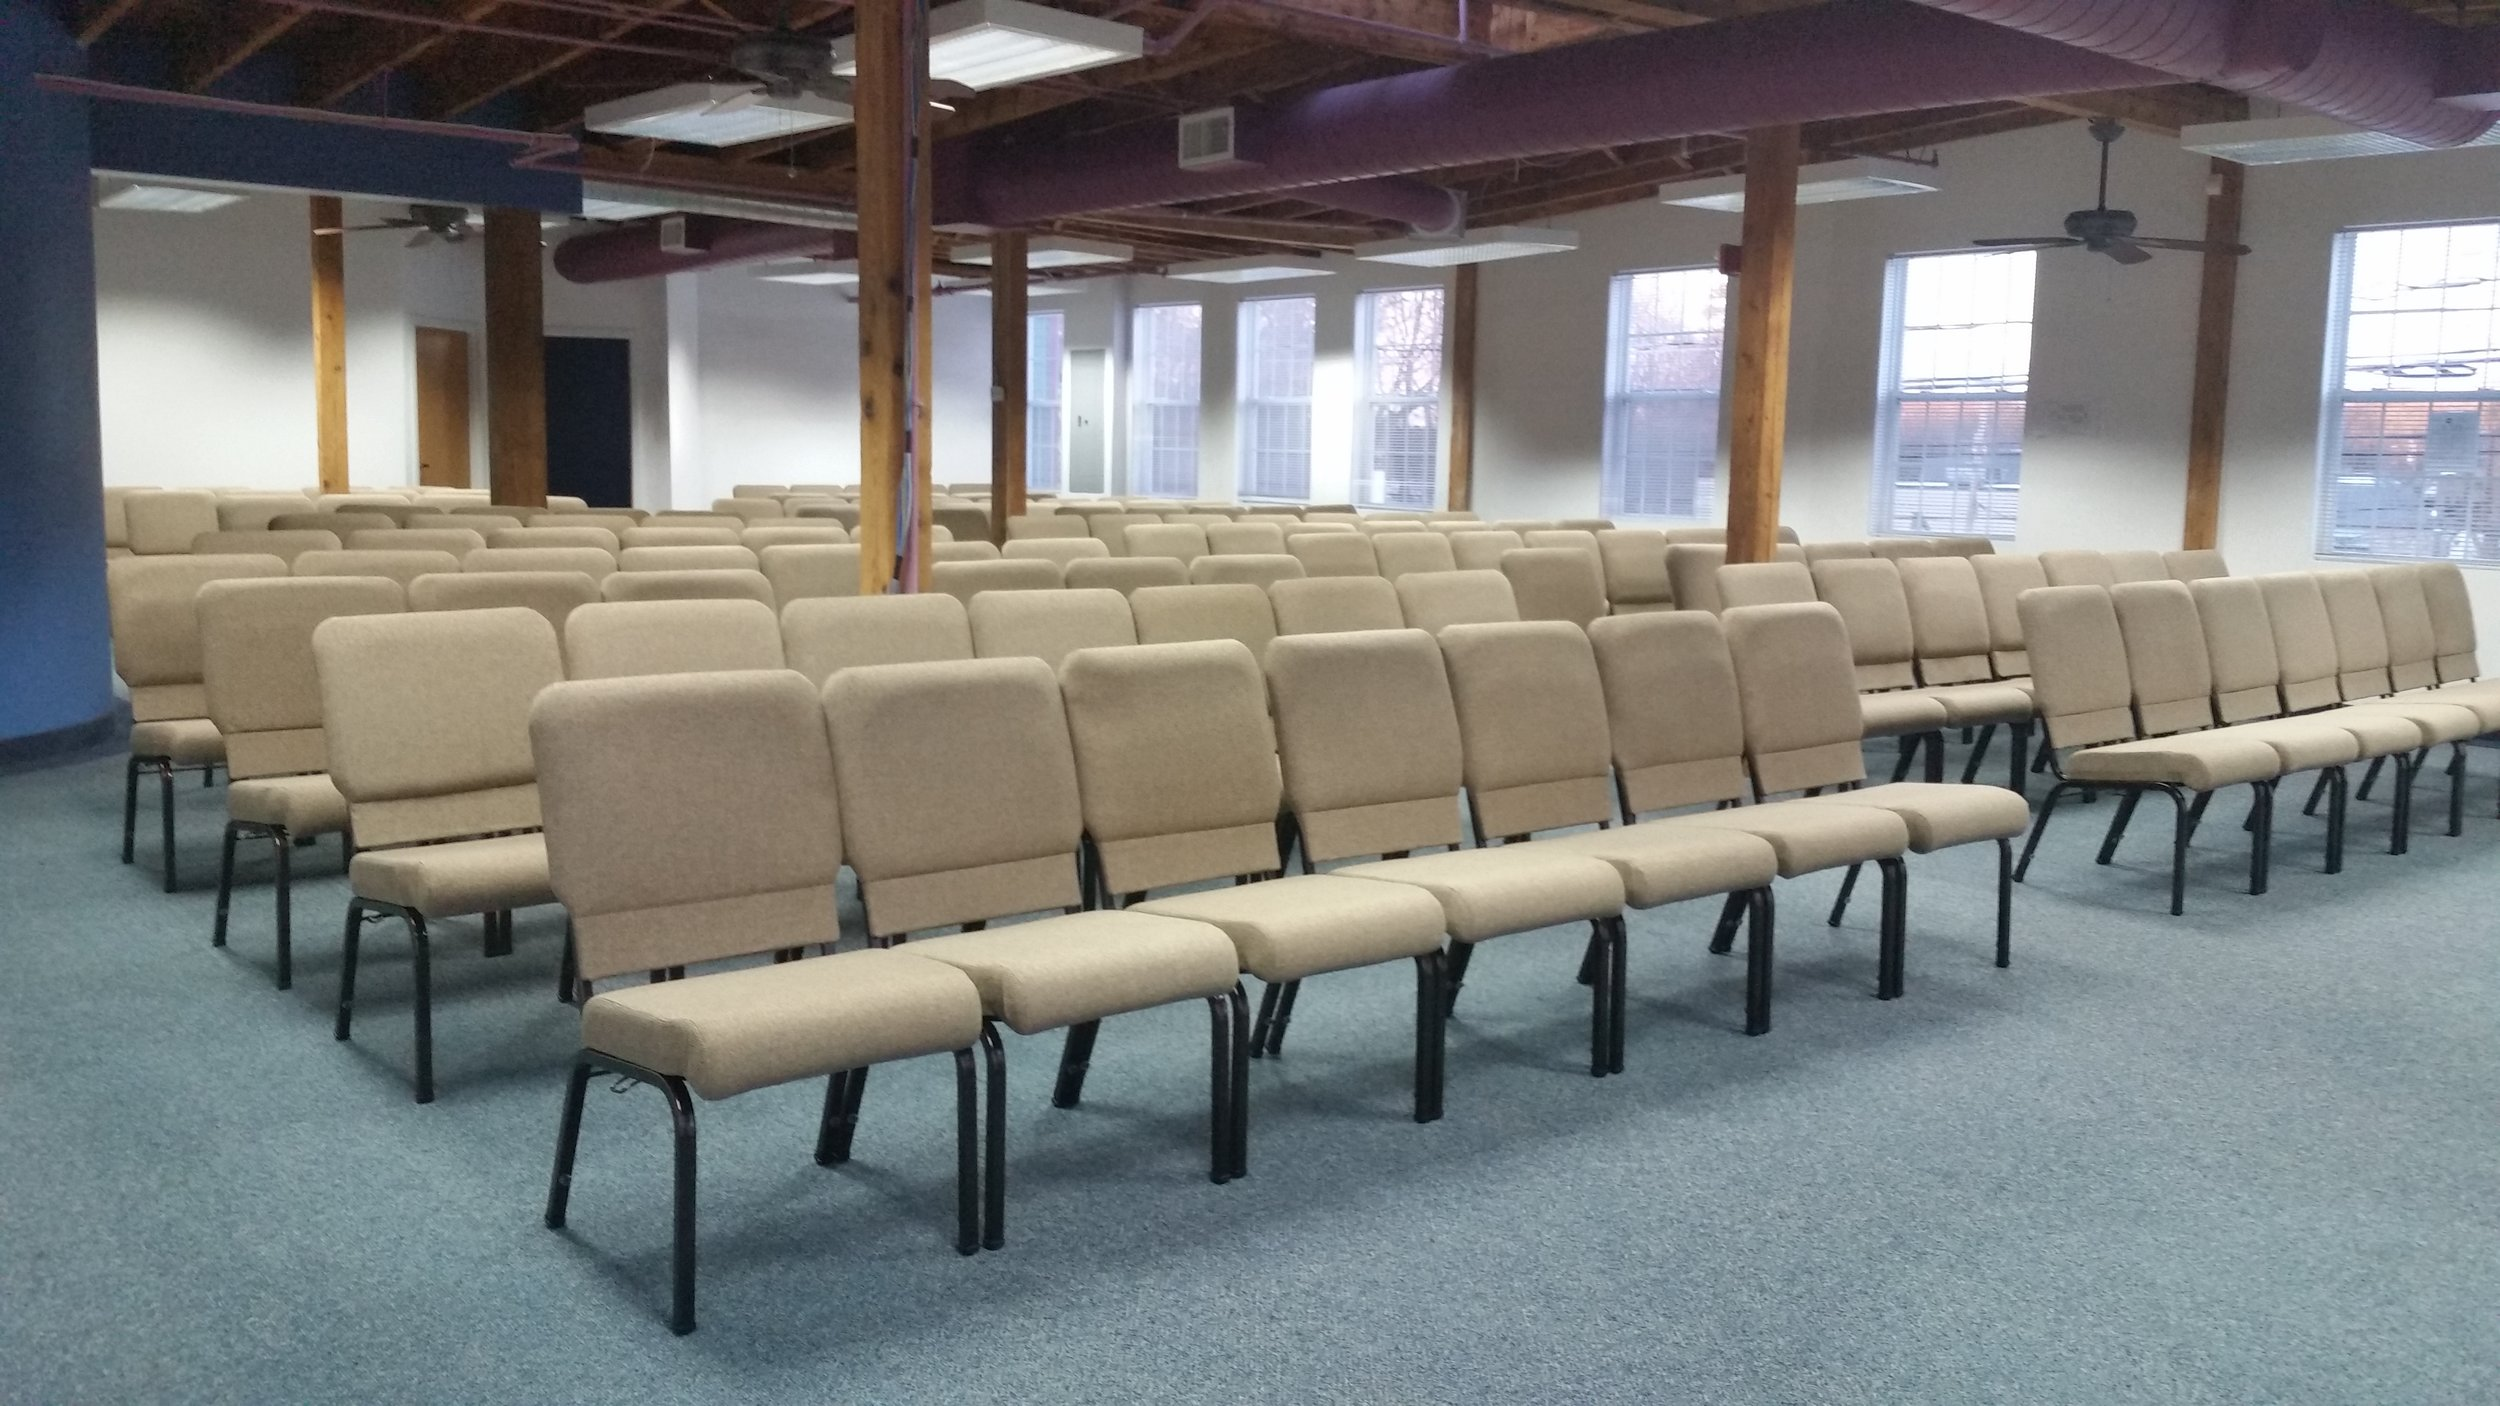 Jan 8th 2017 at 10:30 will be our first gathering at our new location in Stoneham. This is our temporary space while the main room is under construction. Join us as we take the next step in this adventure God has us on!